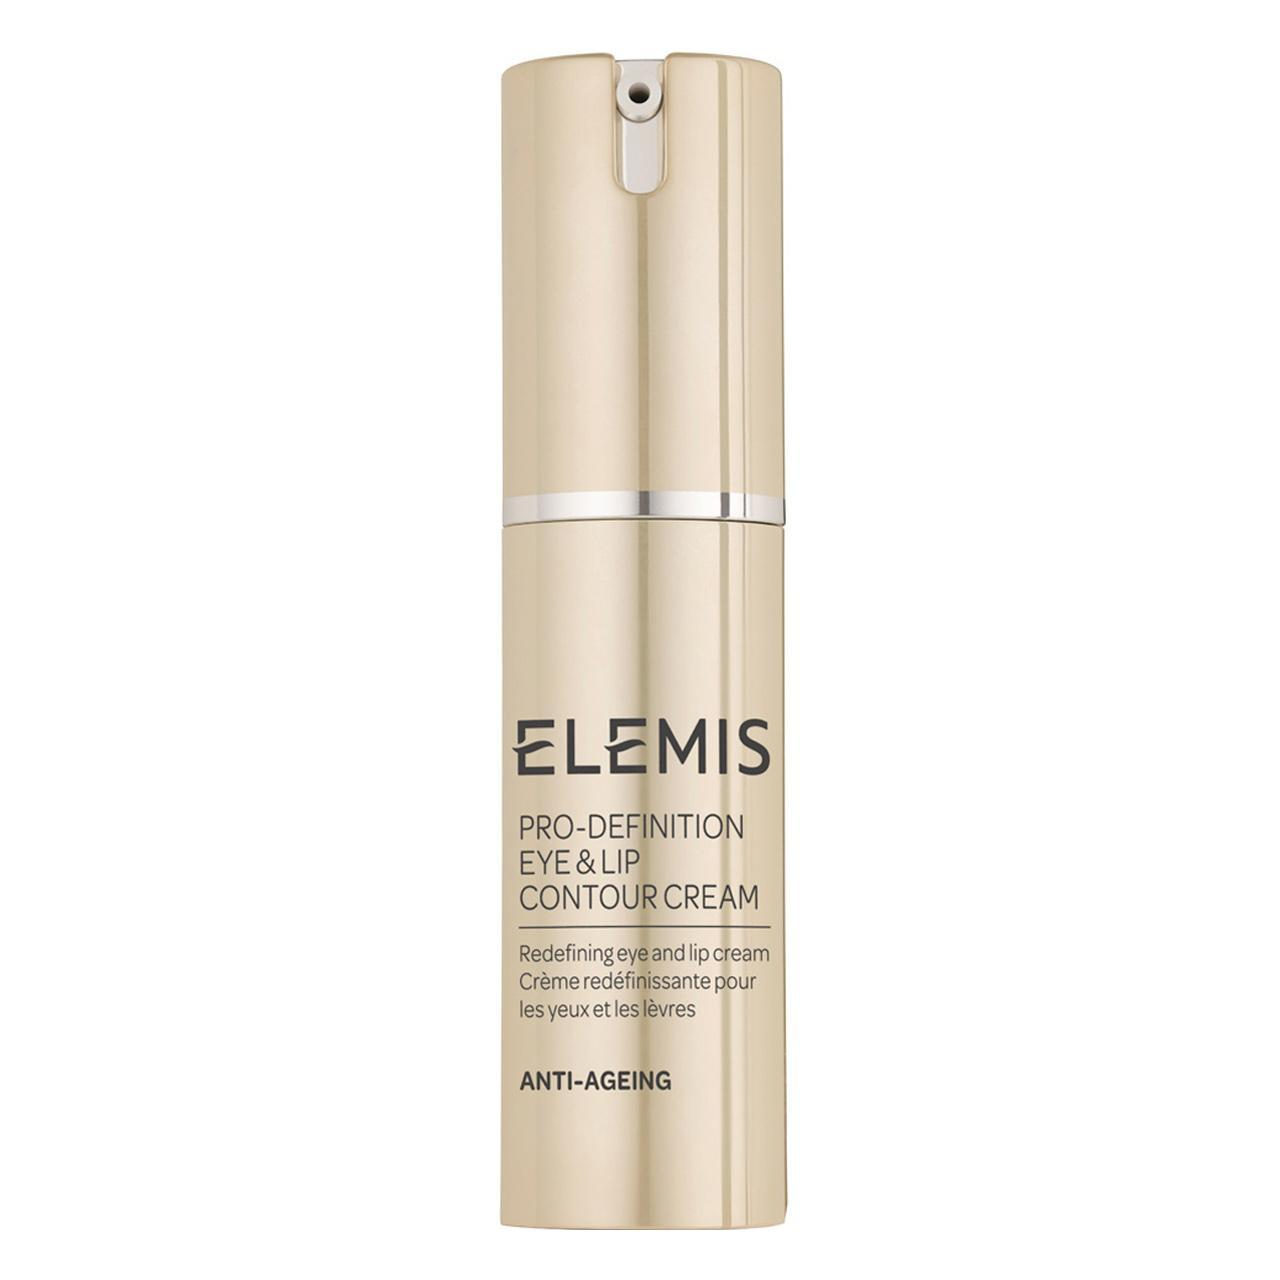 An image of ELEMIS Pro-Definition Eye and Lip Contour Cream